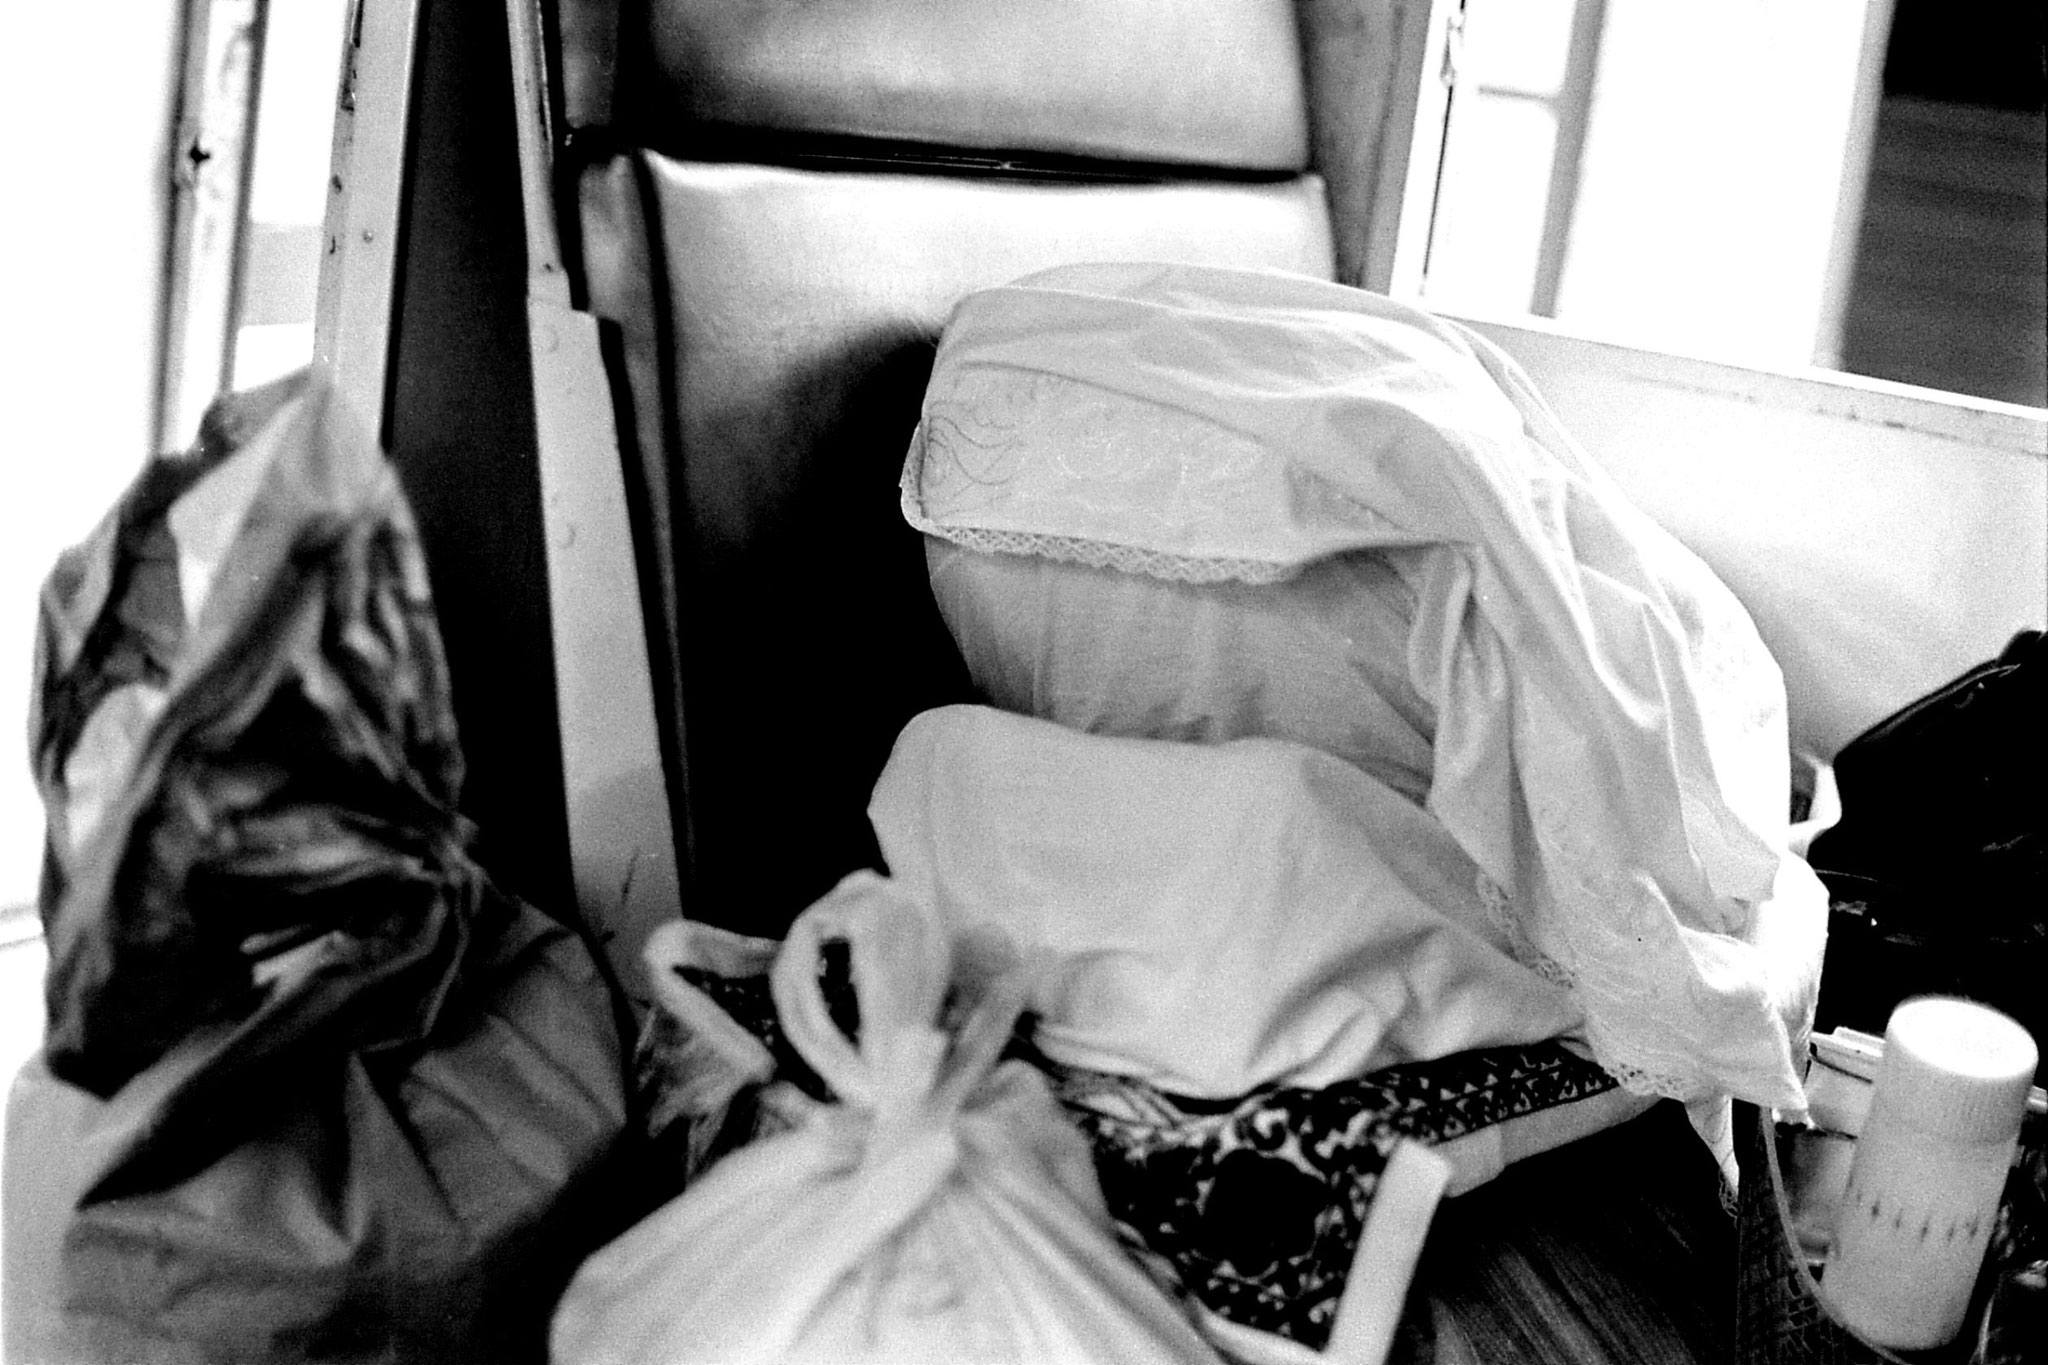 21/6/1990: 34: woman praying on train